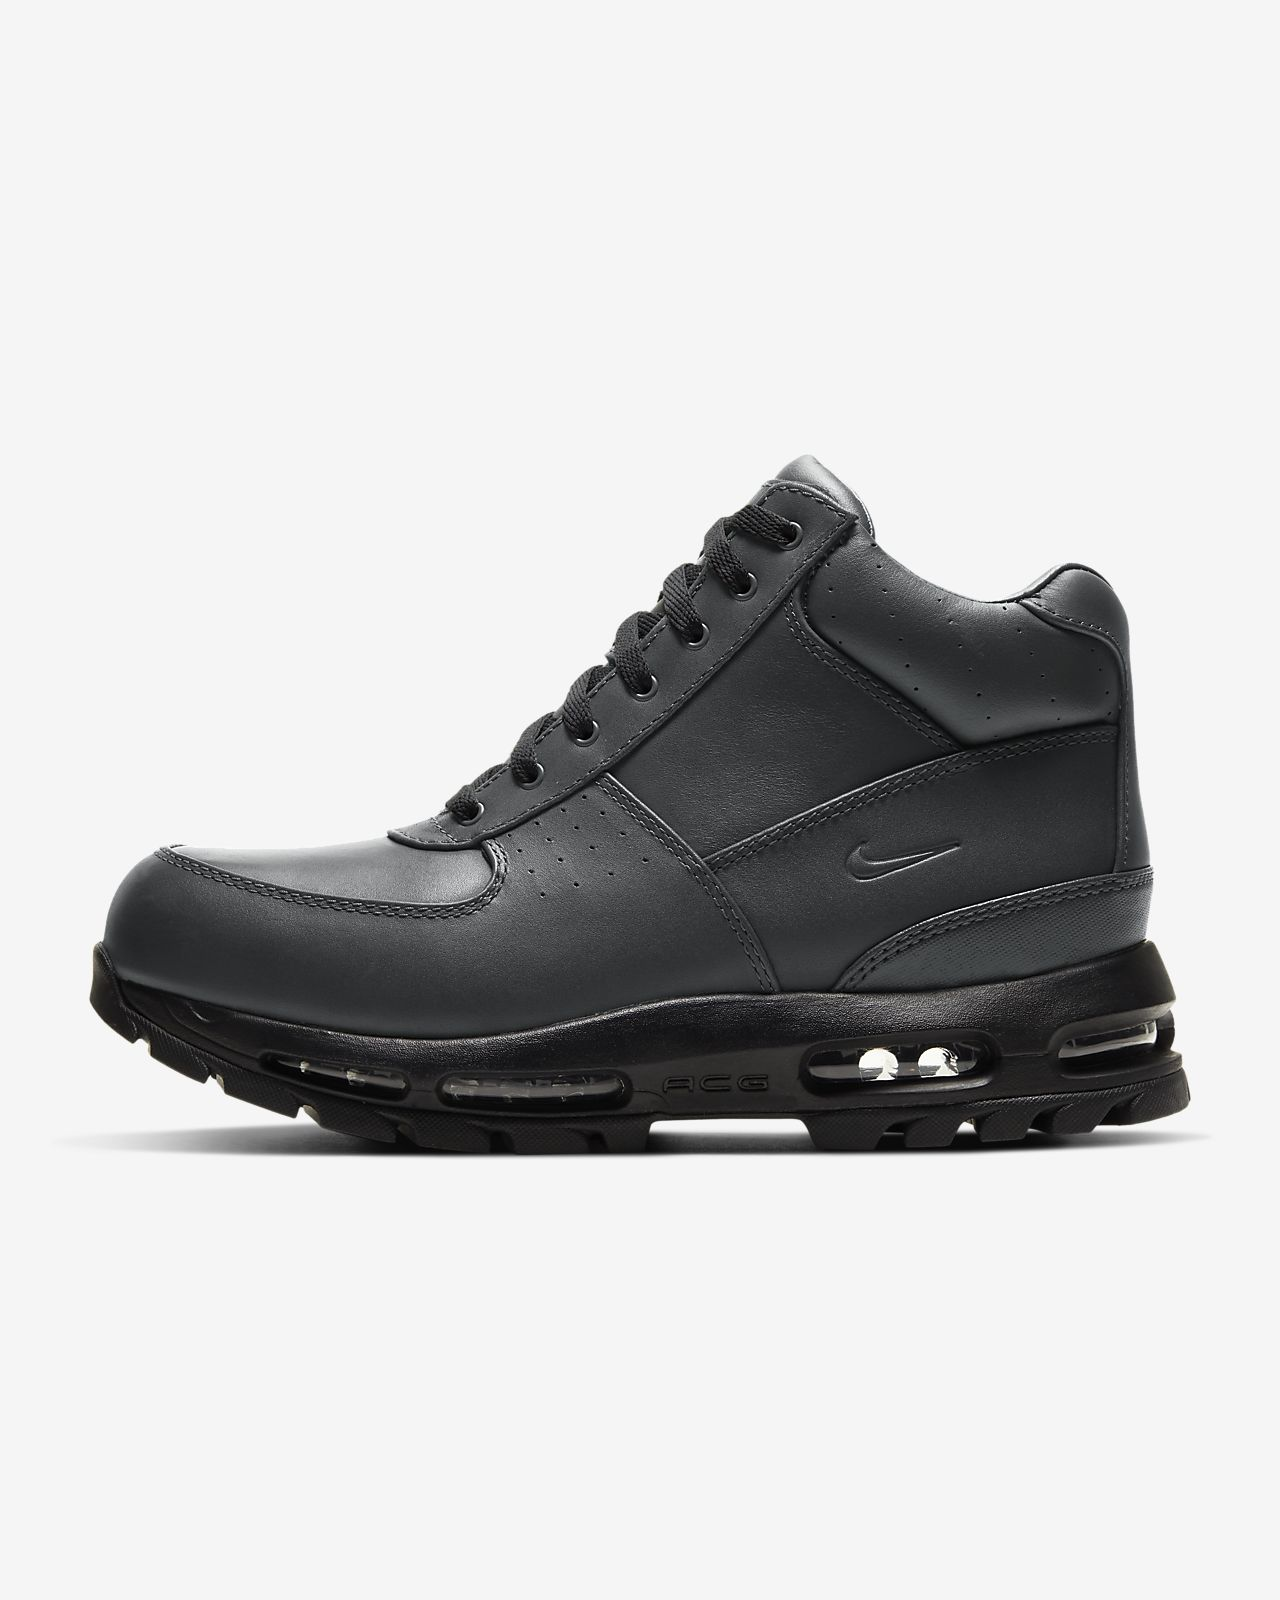 Nike Air Max Goadome Men's Boot